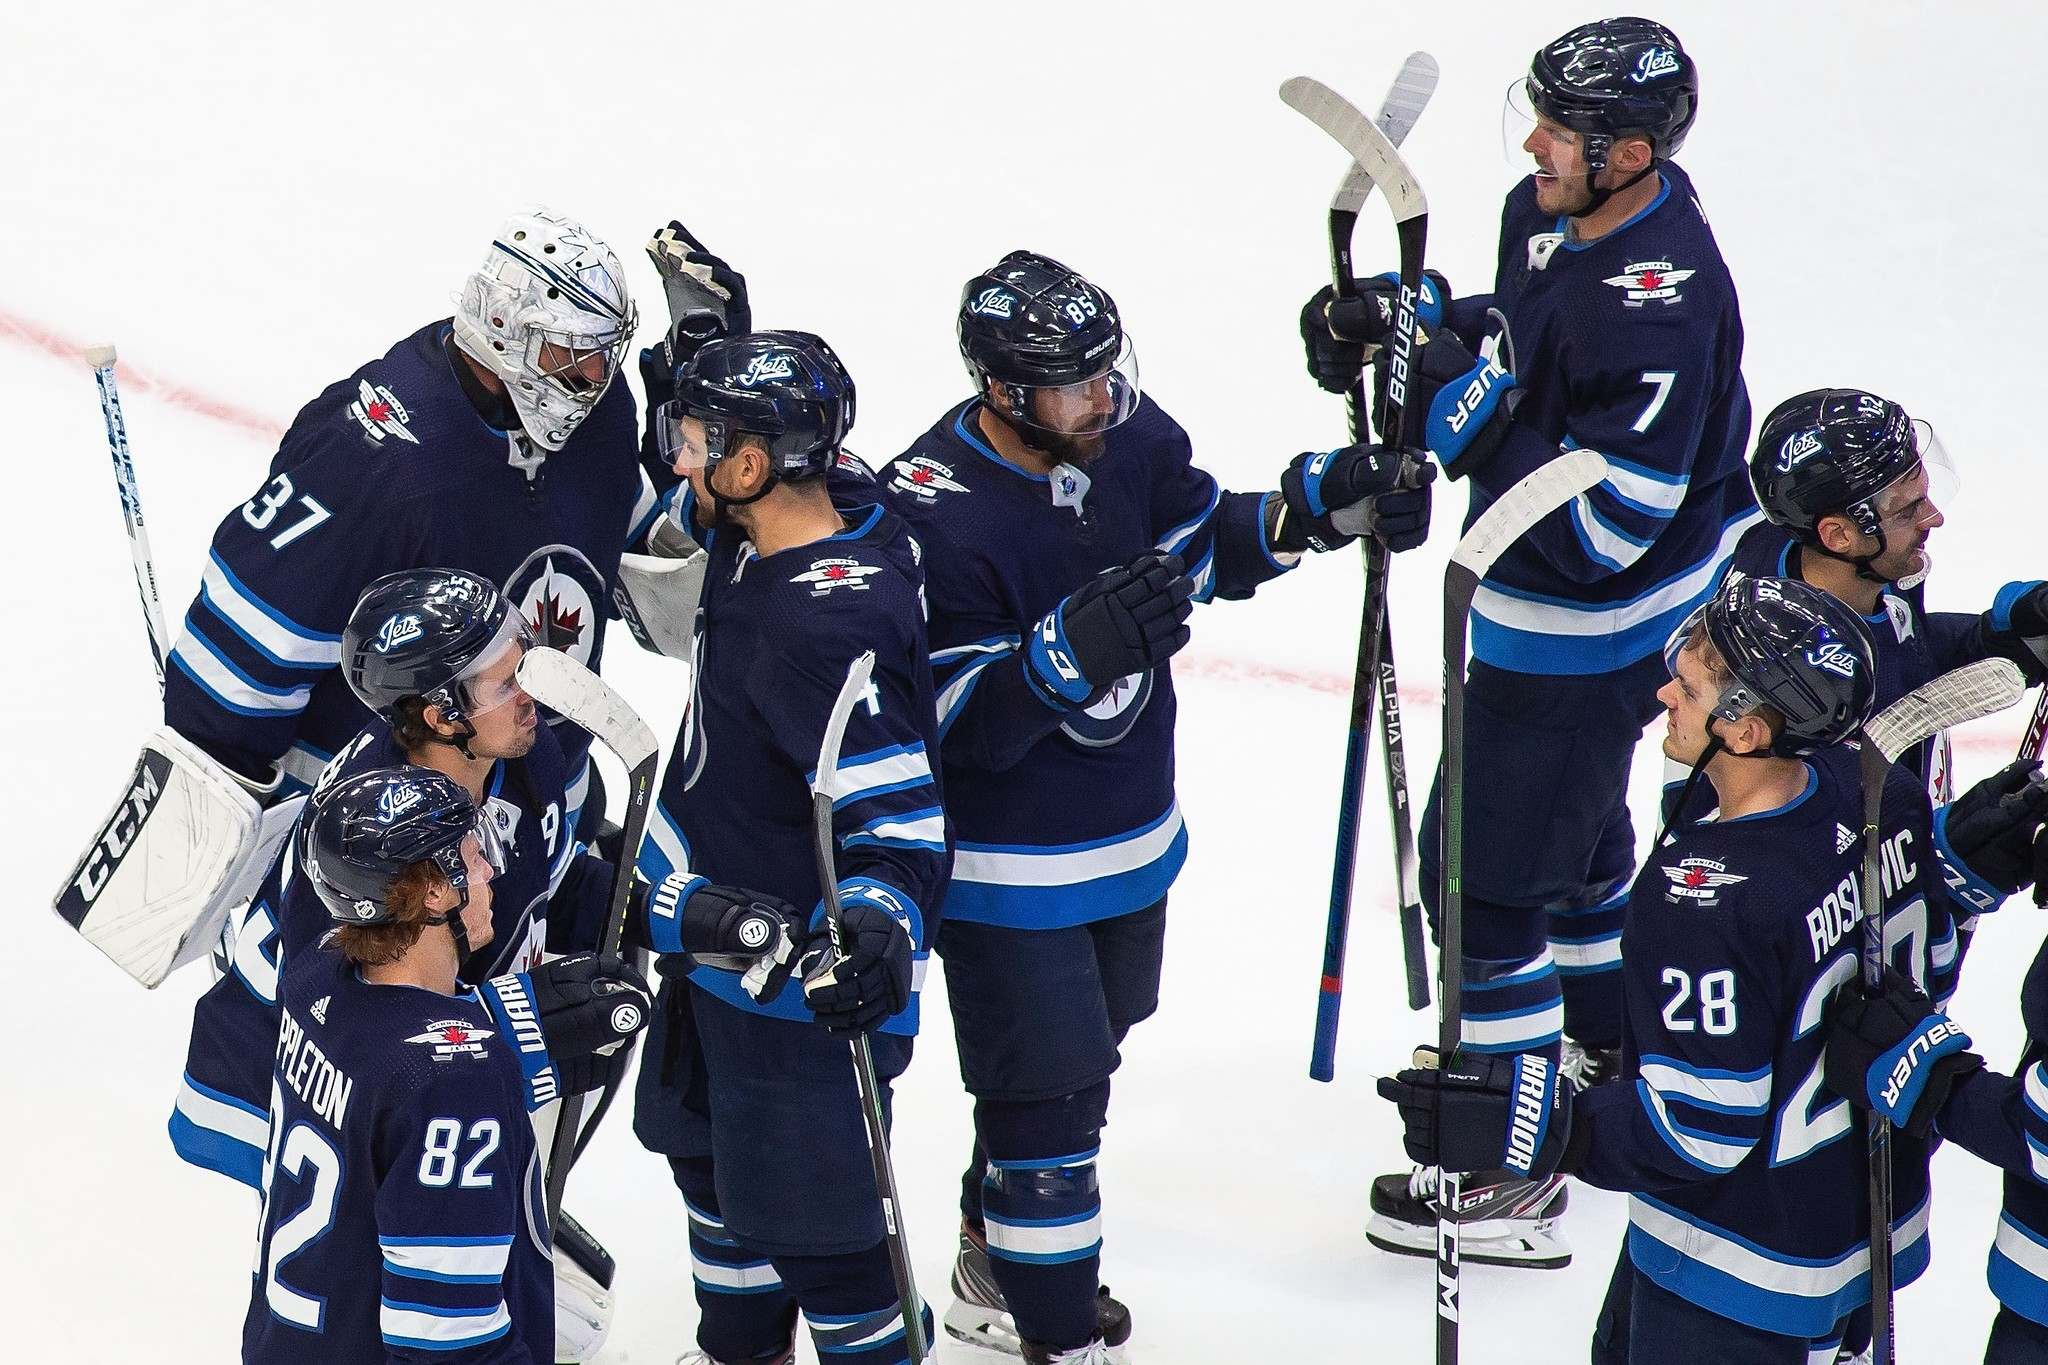 The Jets looked strong in their lone exhibition game, defeating the Vancouver Canucks 4-1 Wednesday night. (Files)